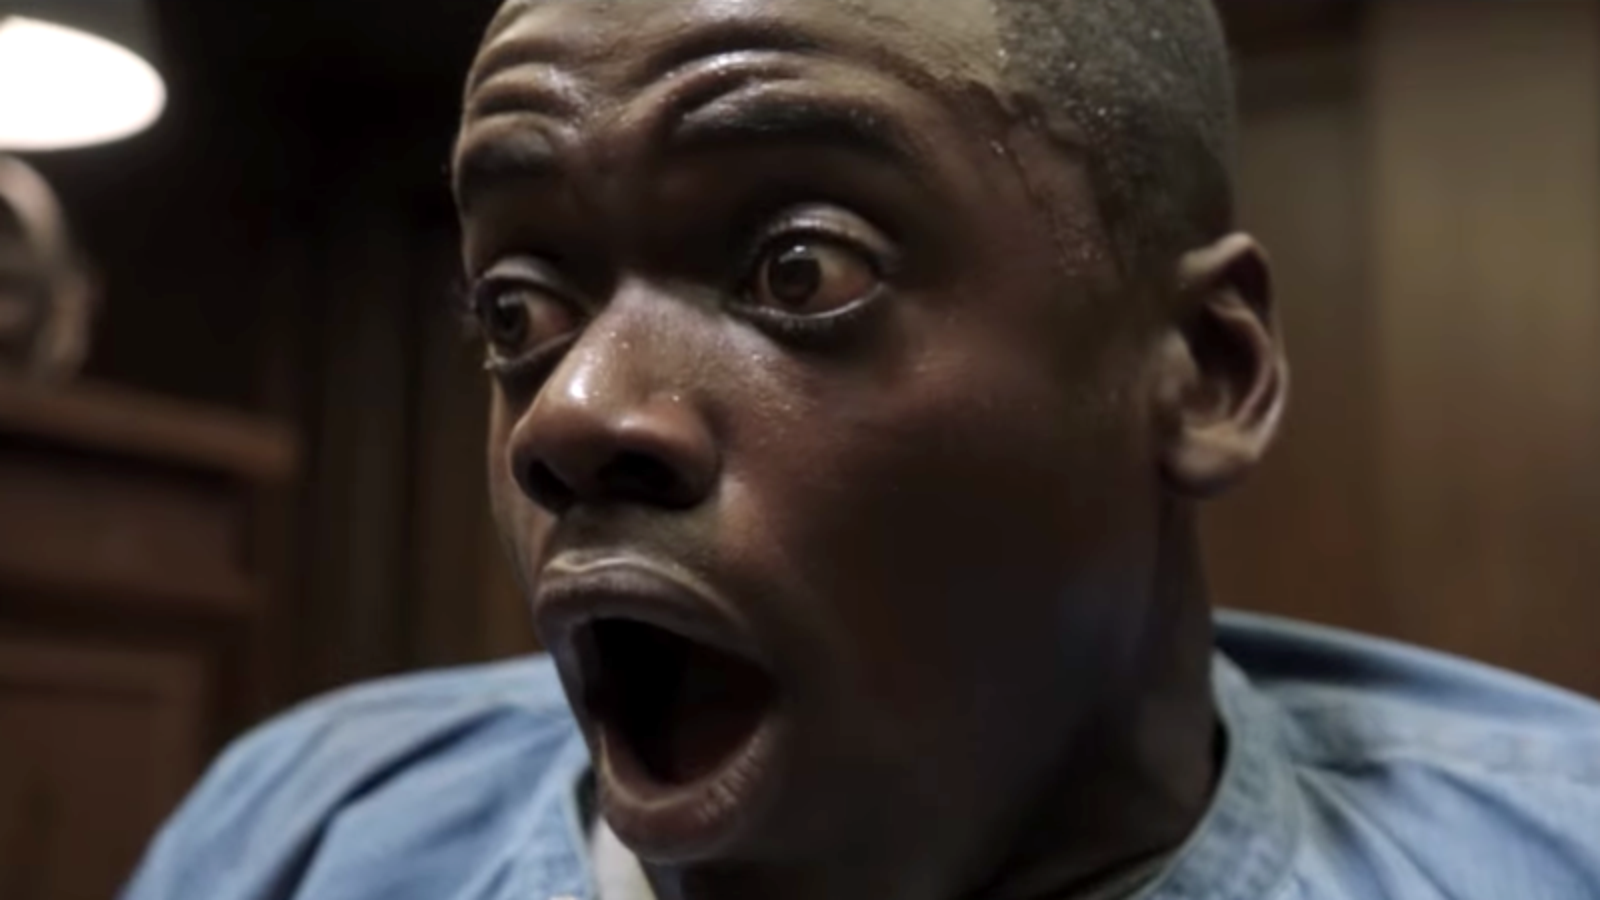 Watch Jordan Peele Respond to Some Great Get Out Fan Theories